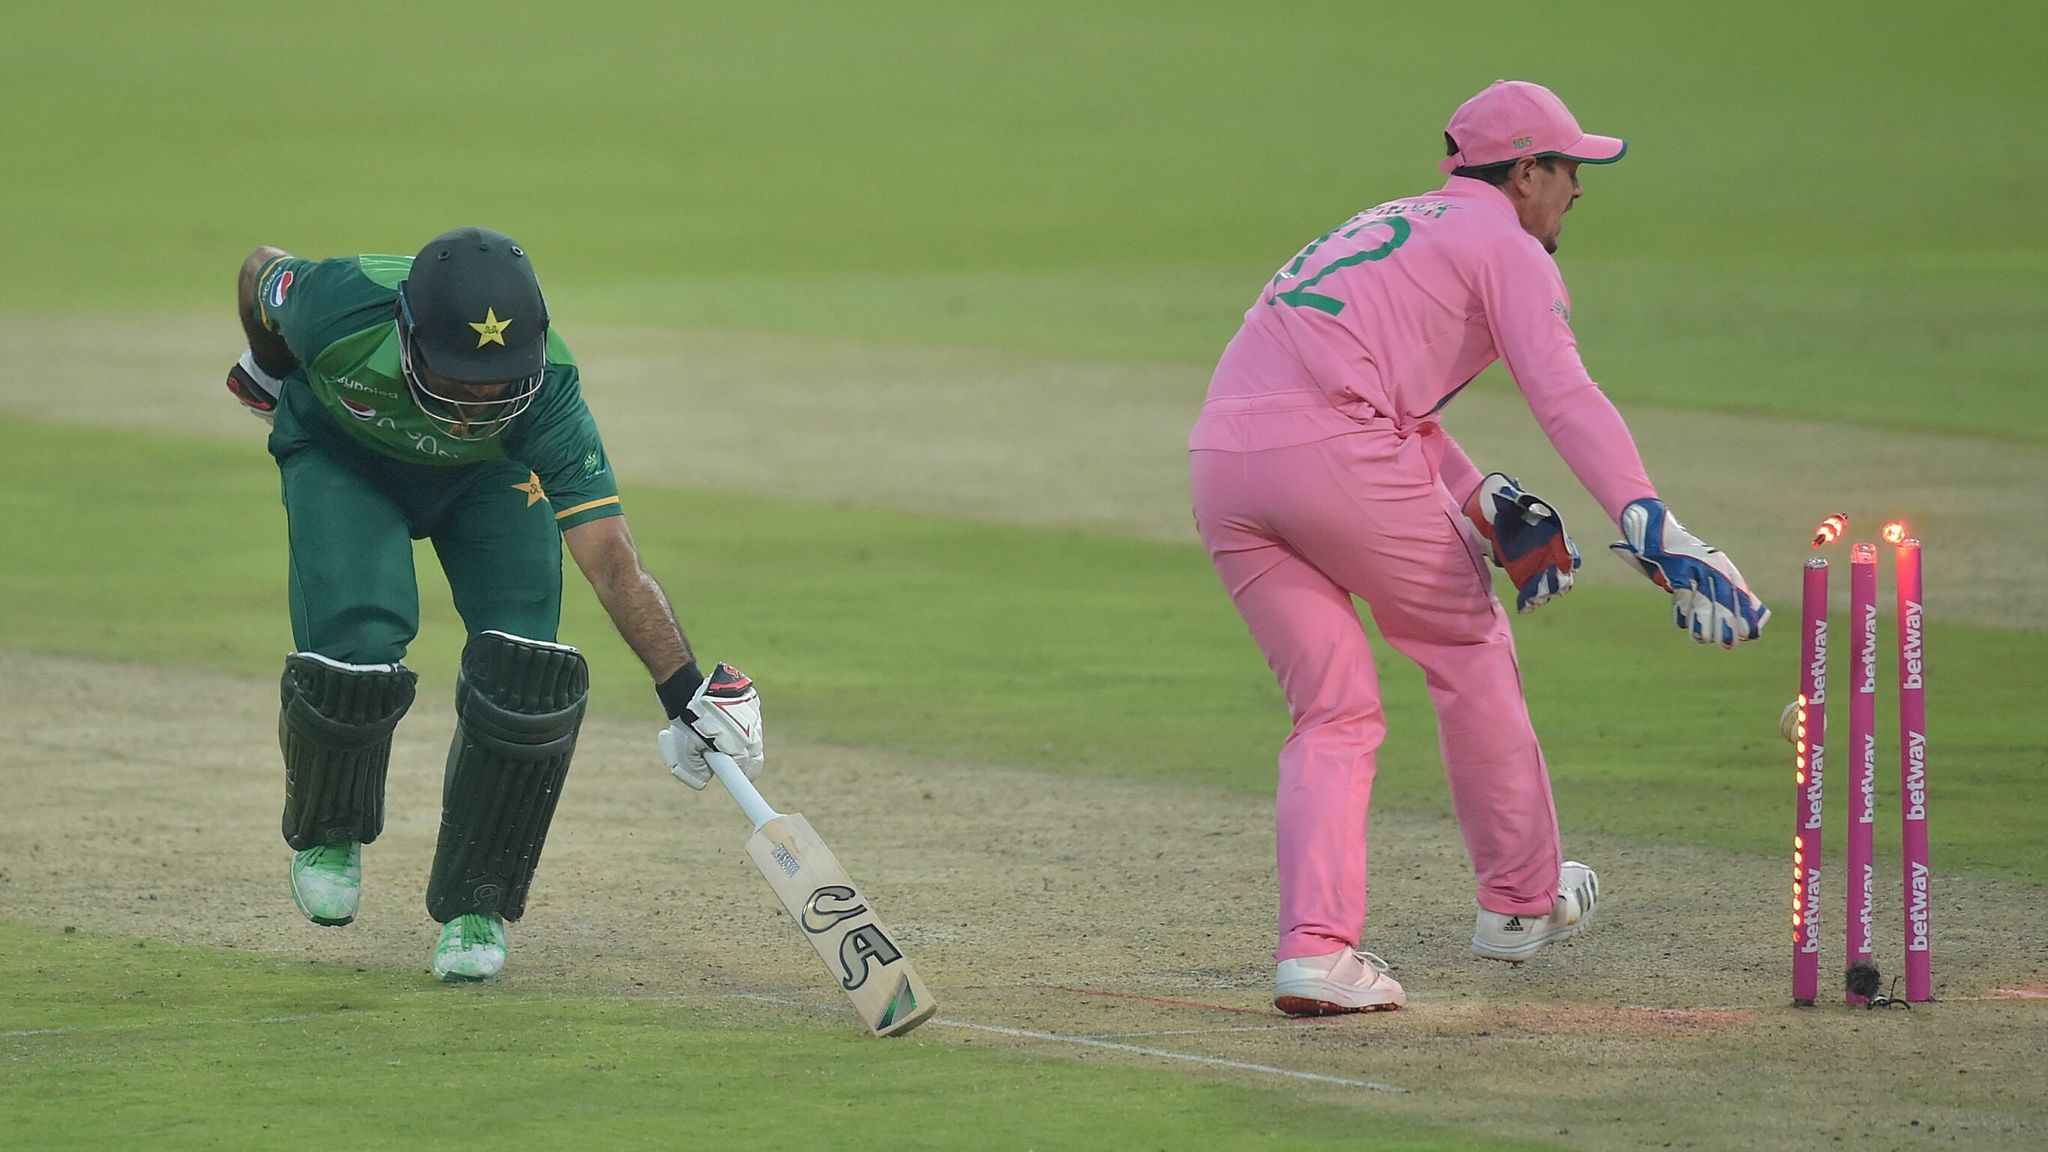 Quinton de Kock: Was South Africa wicketkeeper in the wrong during Fakhar Zaman's run out? | Cricket News | Sky Sports